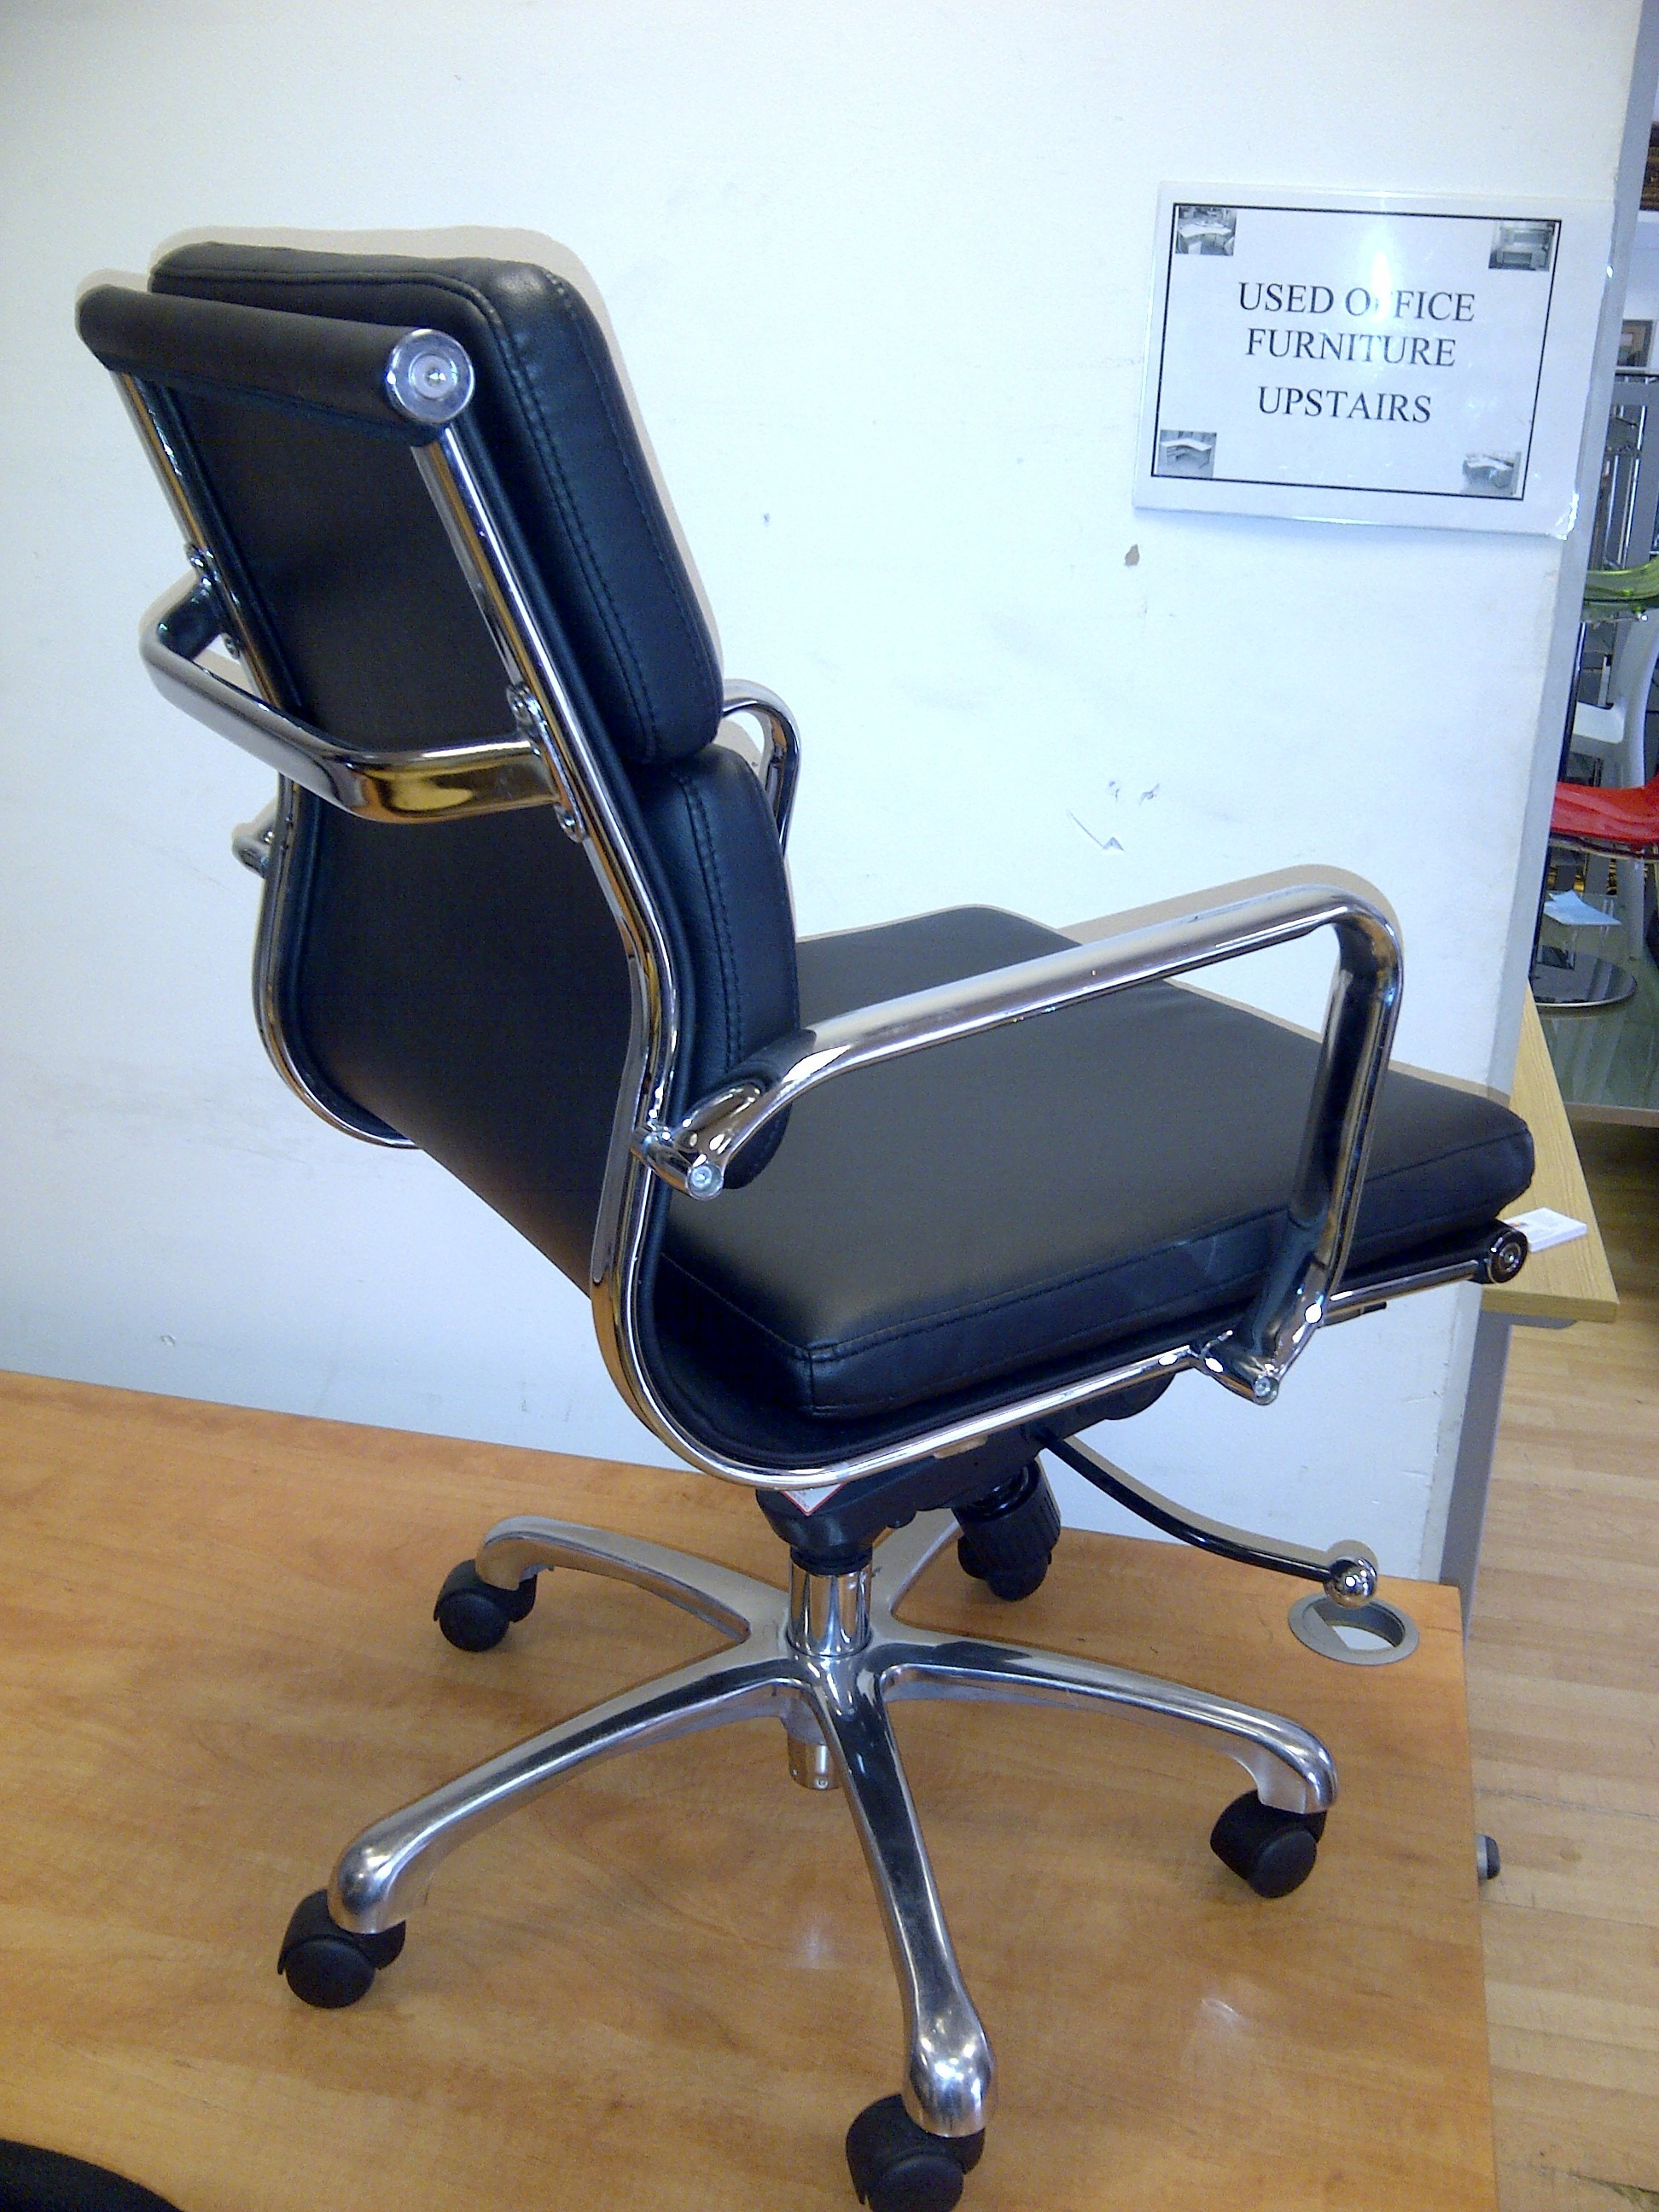 Used Eames Soft Pad Chair Used Office Furniture Docklands London New in  stock UsedEames Soft Pad Management Chair Used  1970 Eames Soft Pad  . Eames Soft Pad Management Chair Used. Home Design Ideas